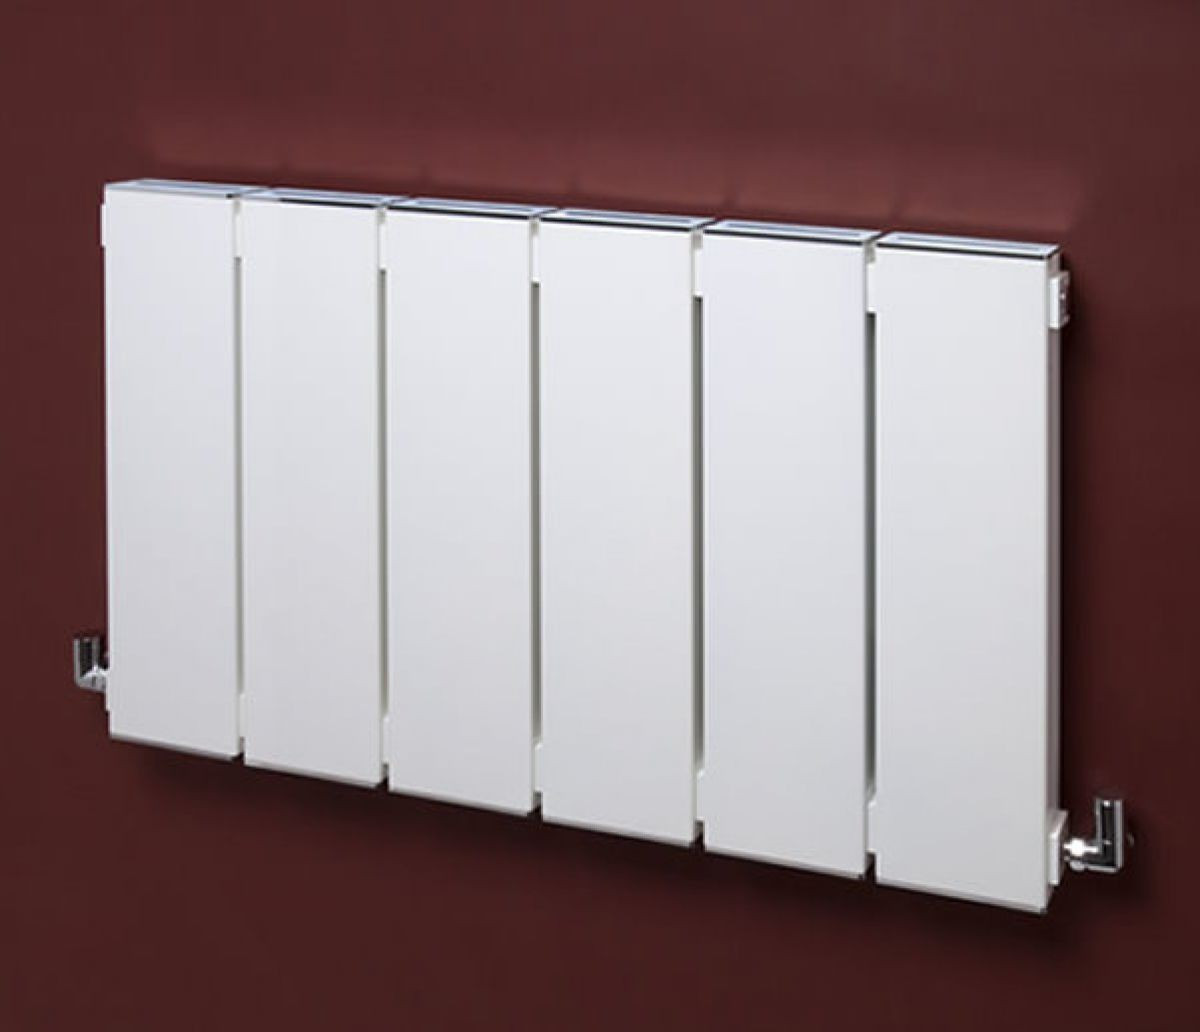 Bisque Blok White Radiator